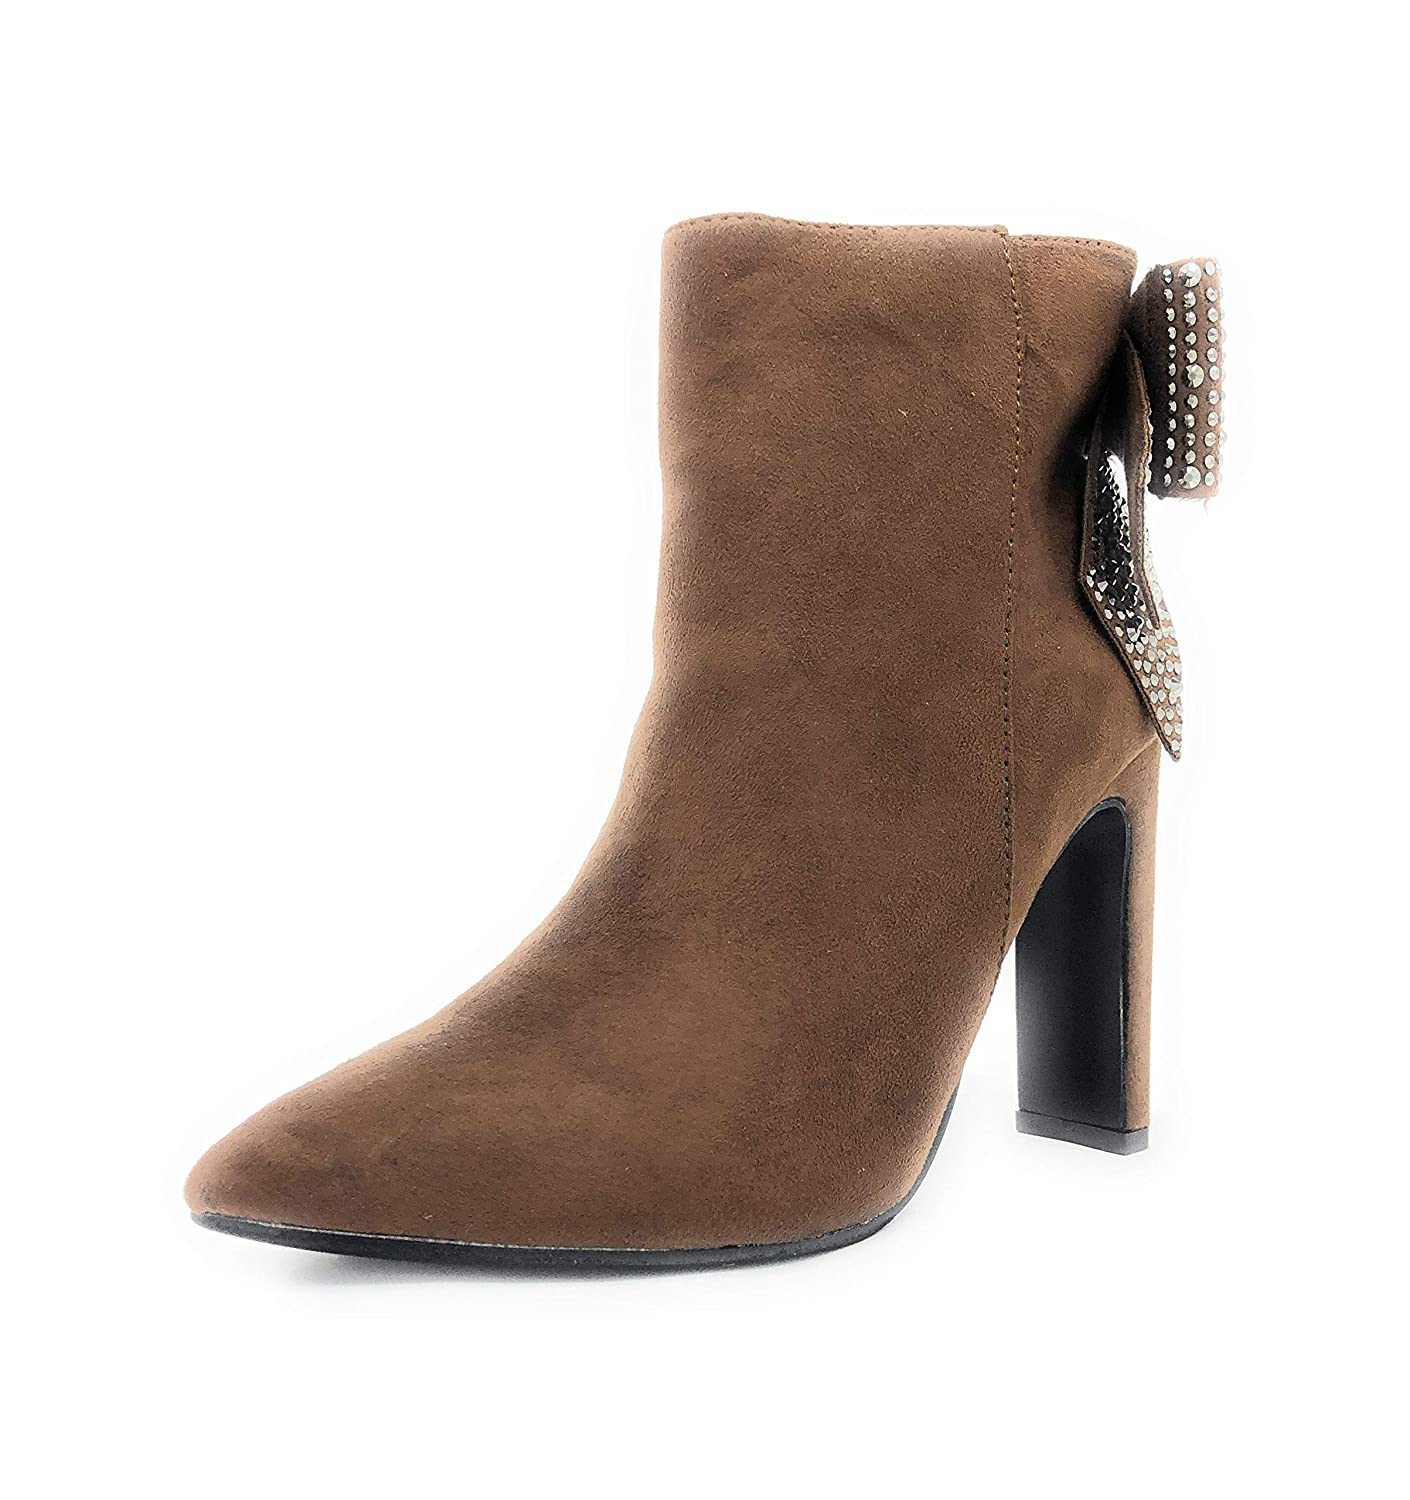 Camel-lala-02 SOLE COLLECTION Pointed Toe Ankle Boots Size Zipper Stiletto High Heels Party Wedding Pumps Dress shoes for Women